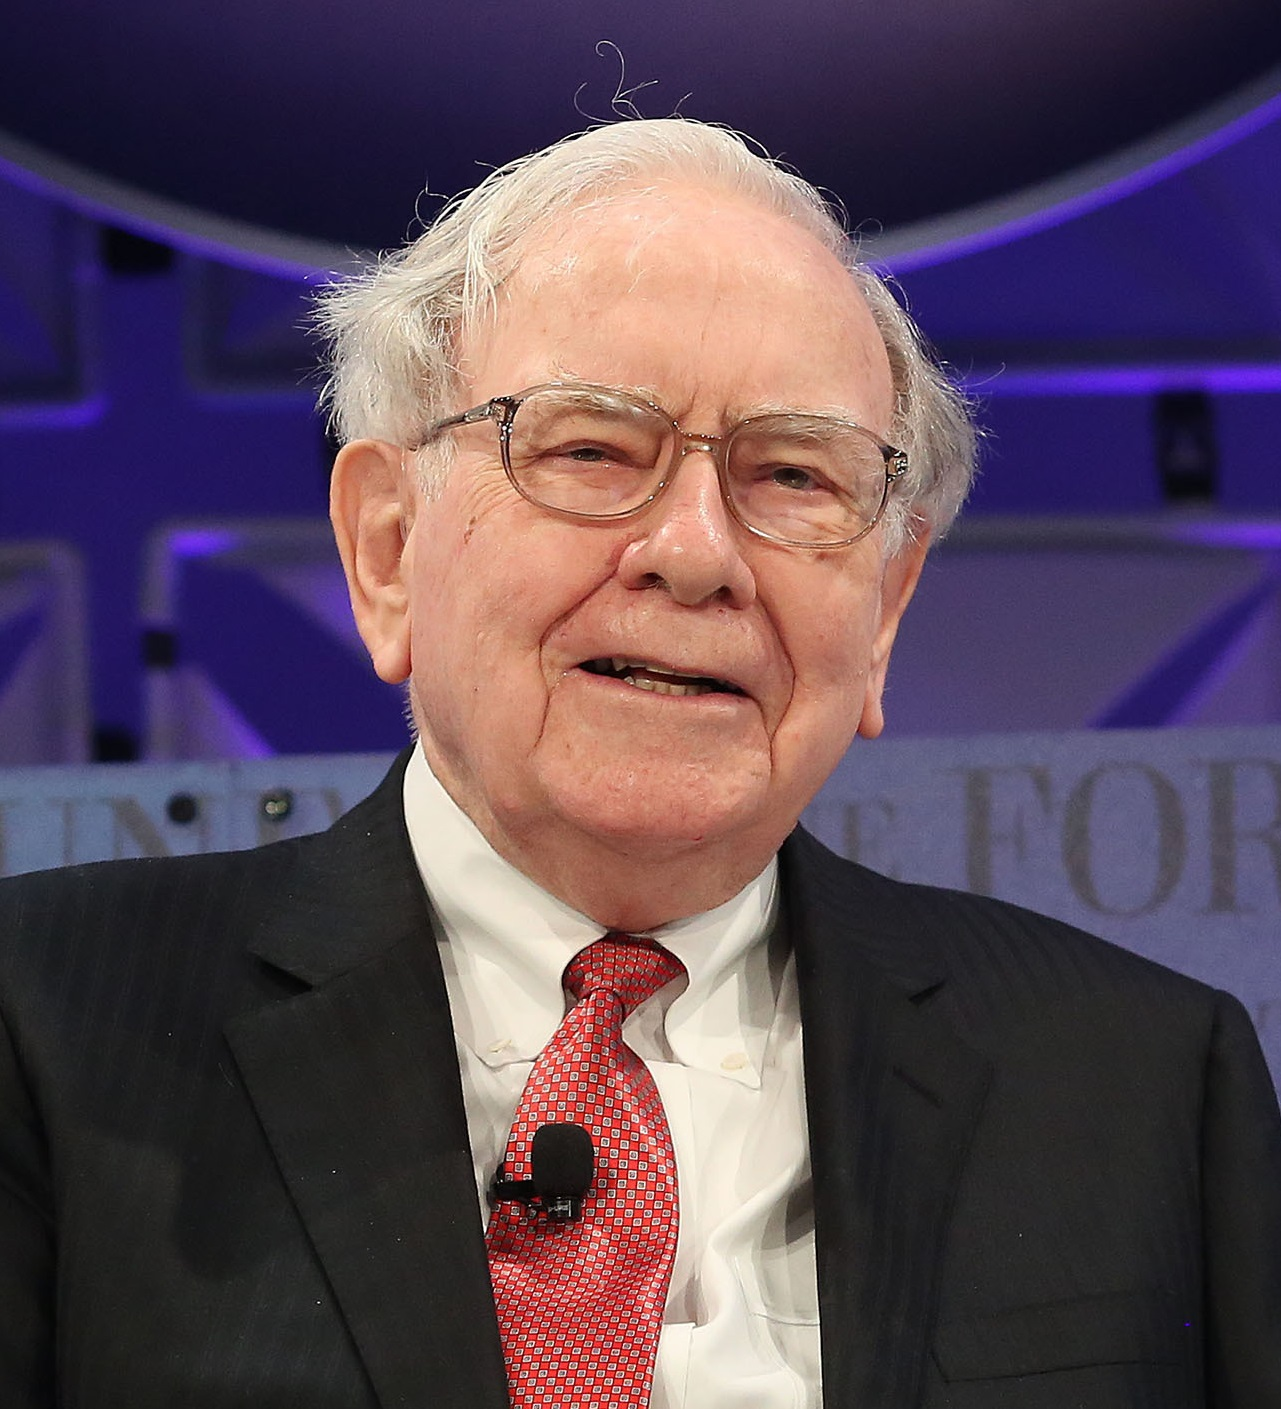 Warren Buffet, Berkshire Hathaway